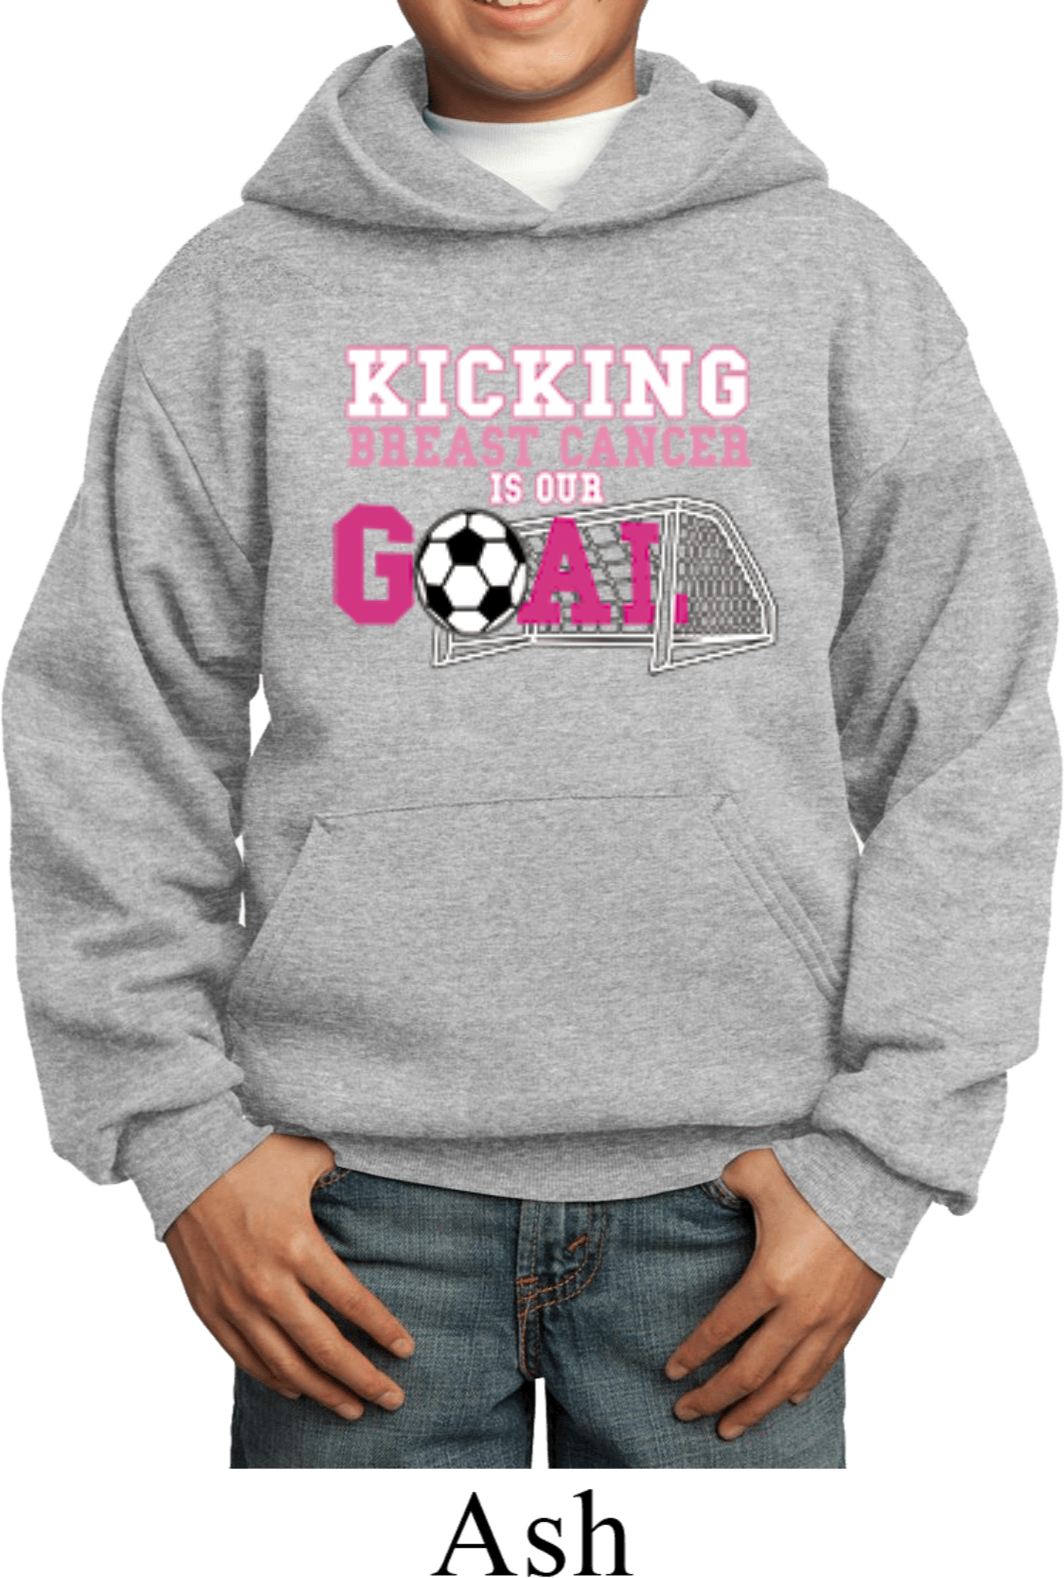 Buy Cool Shirts Kids Breast Cancer Hoodie Kicking Cancer is Our Goal